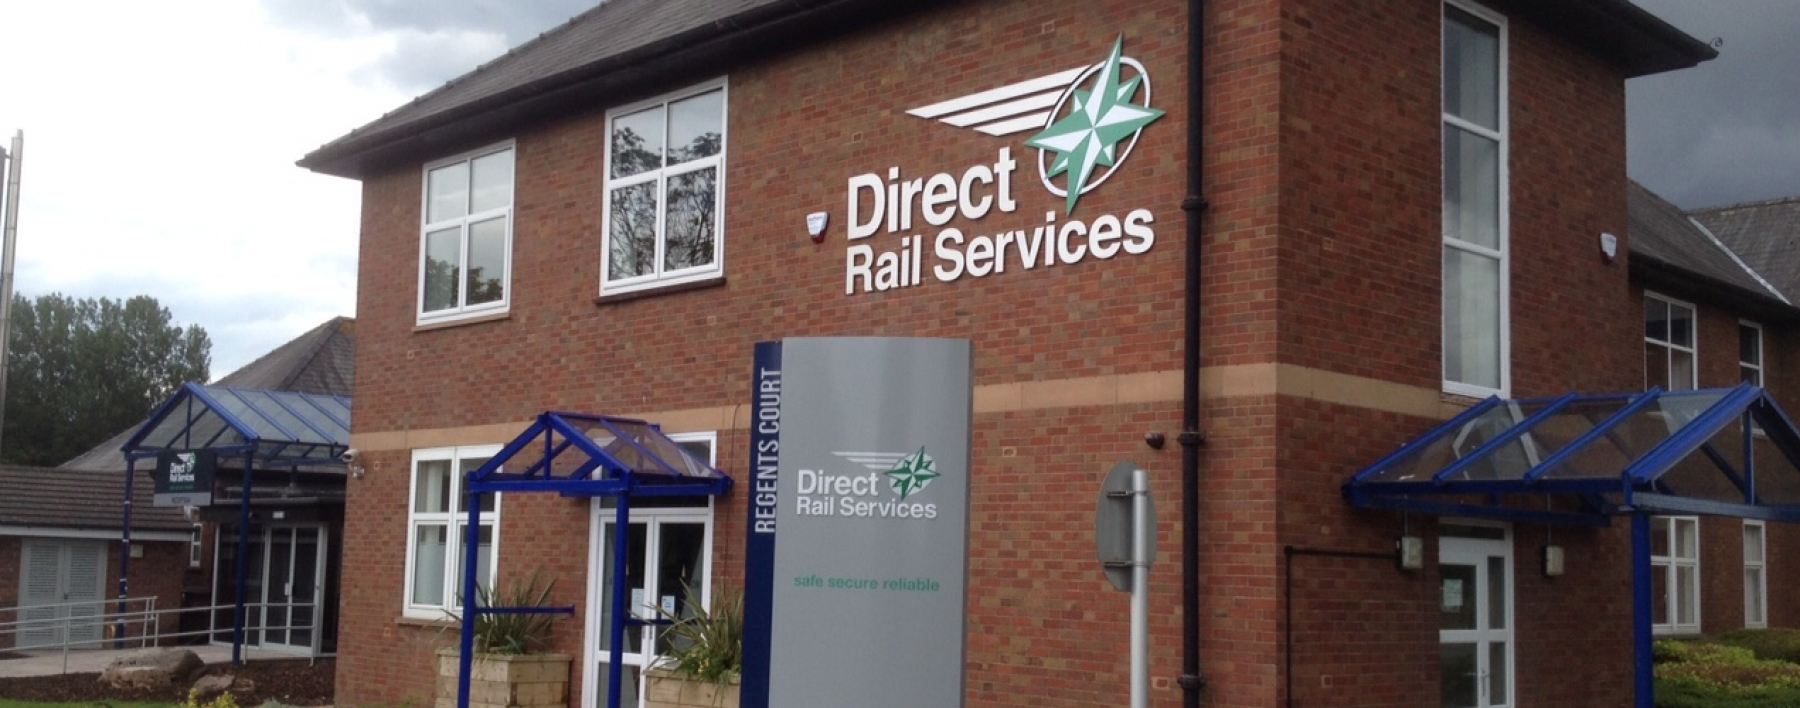 Direct Rail Services' new offices